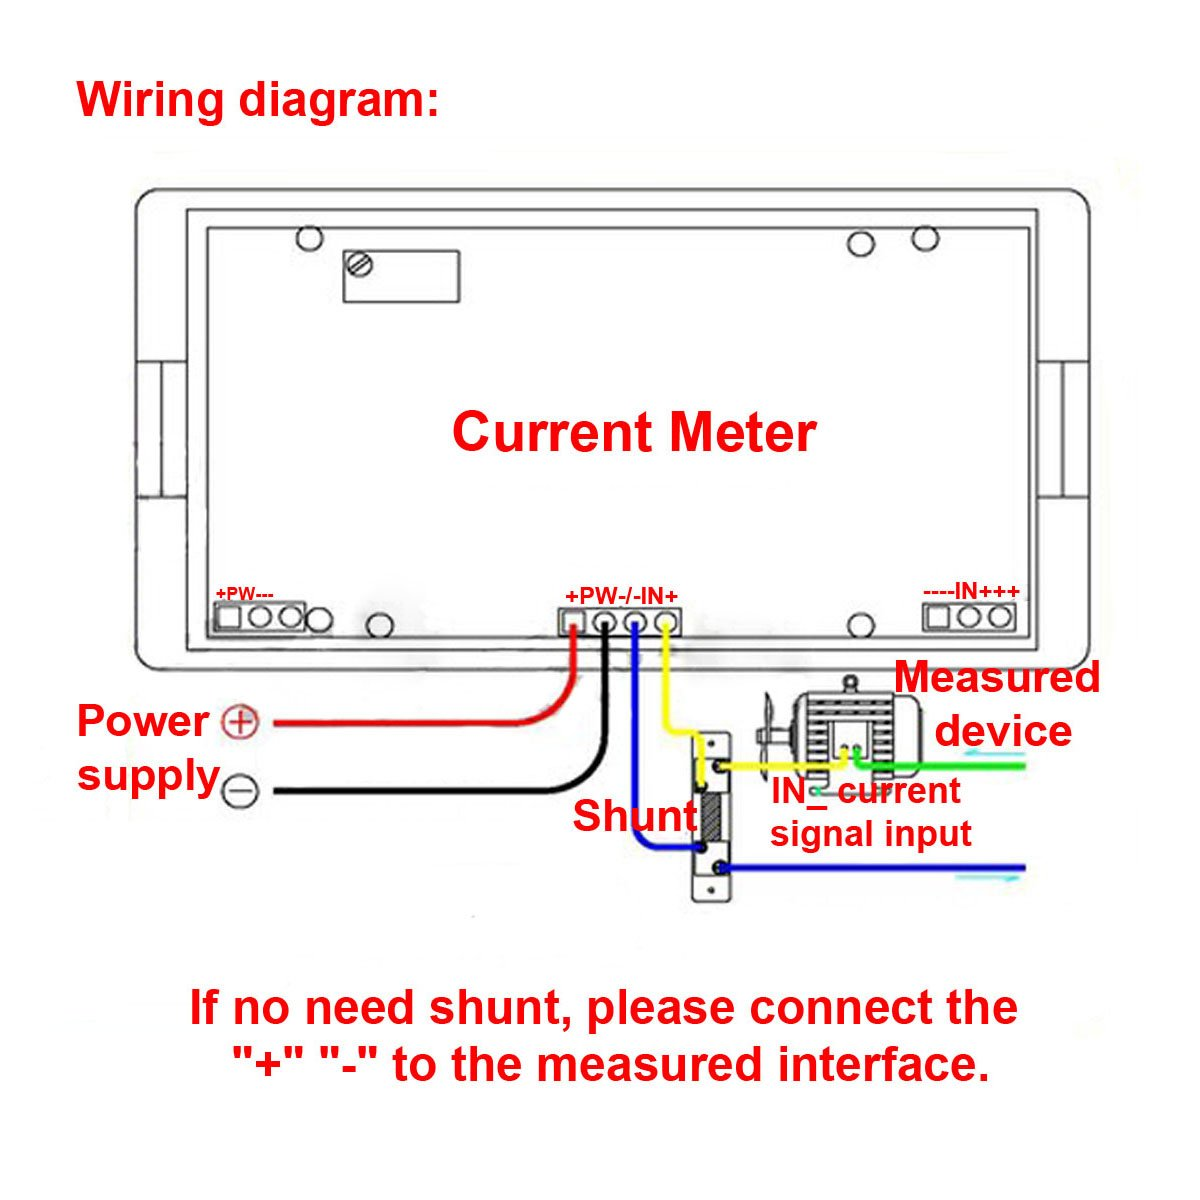 71y4ihHRXiL._SL1200_ drok wiring diagram drok power supply \u2022 wiring diagrams j squared co dc ammeter shunt wiring diagram at virtualis.co